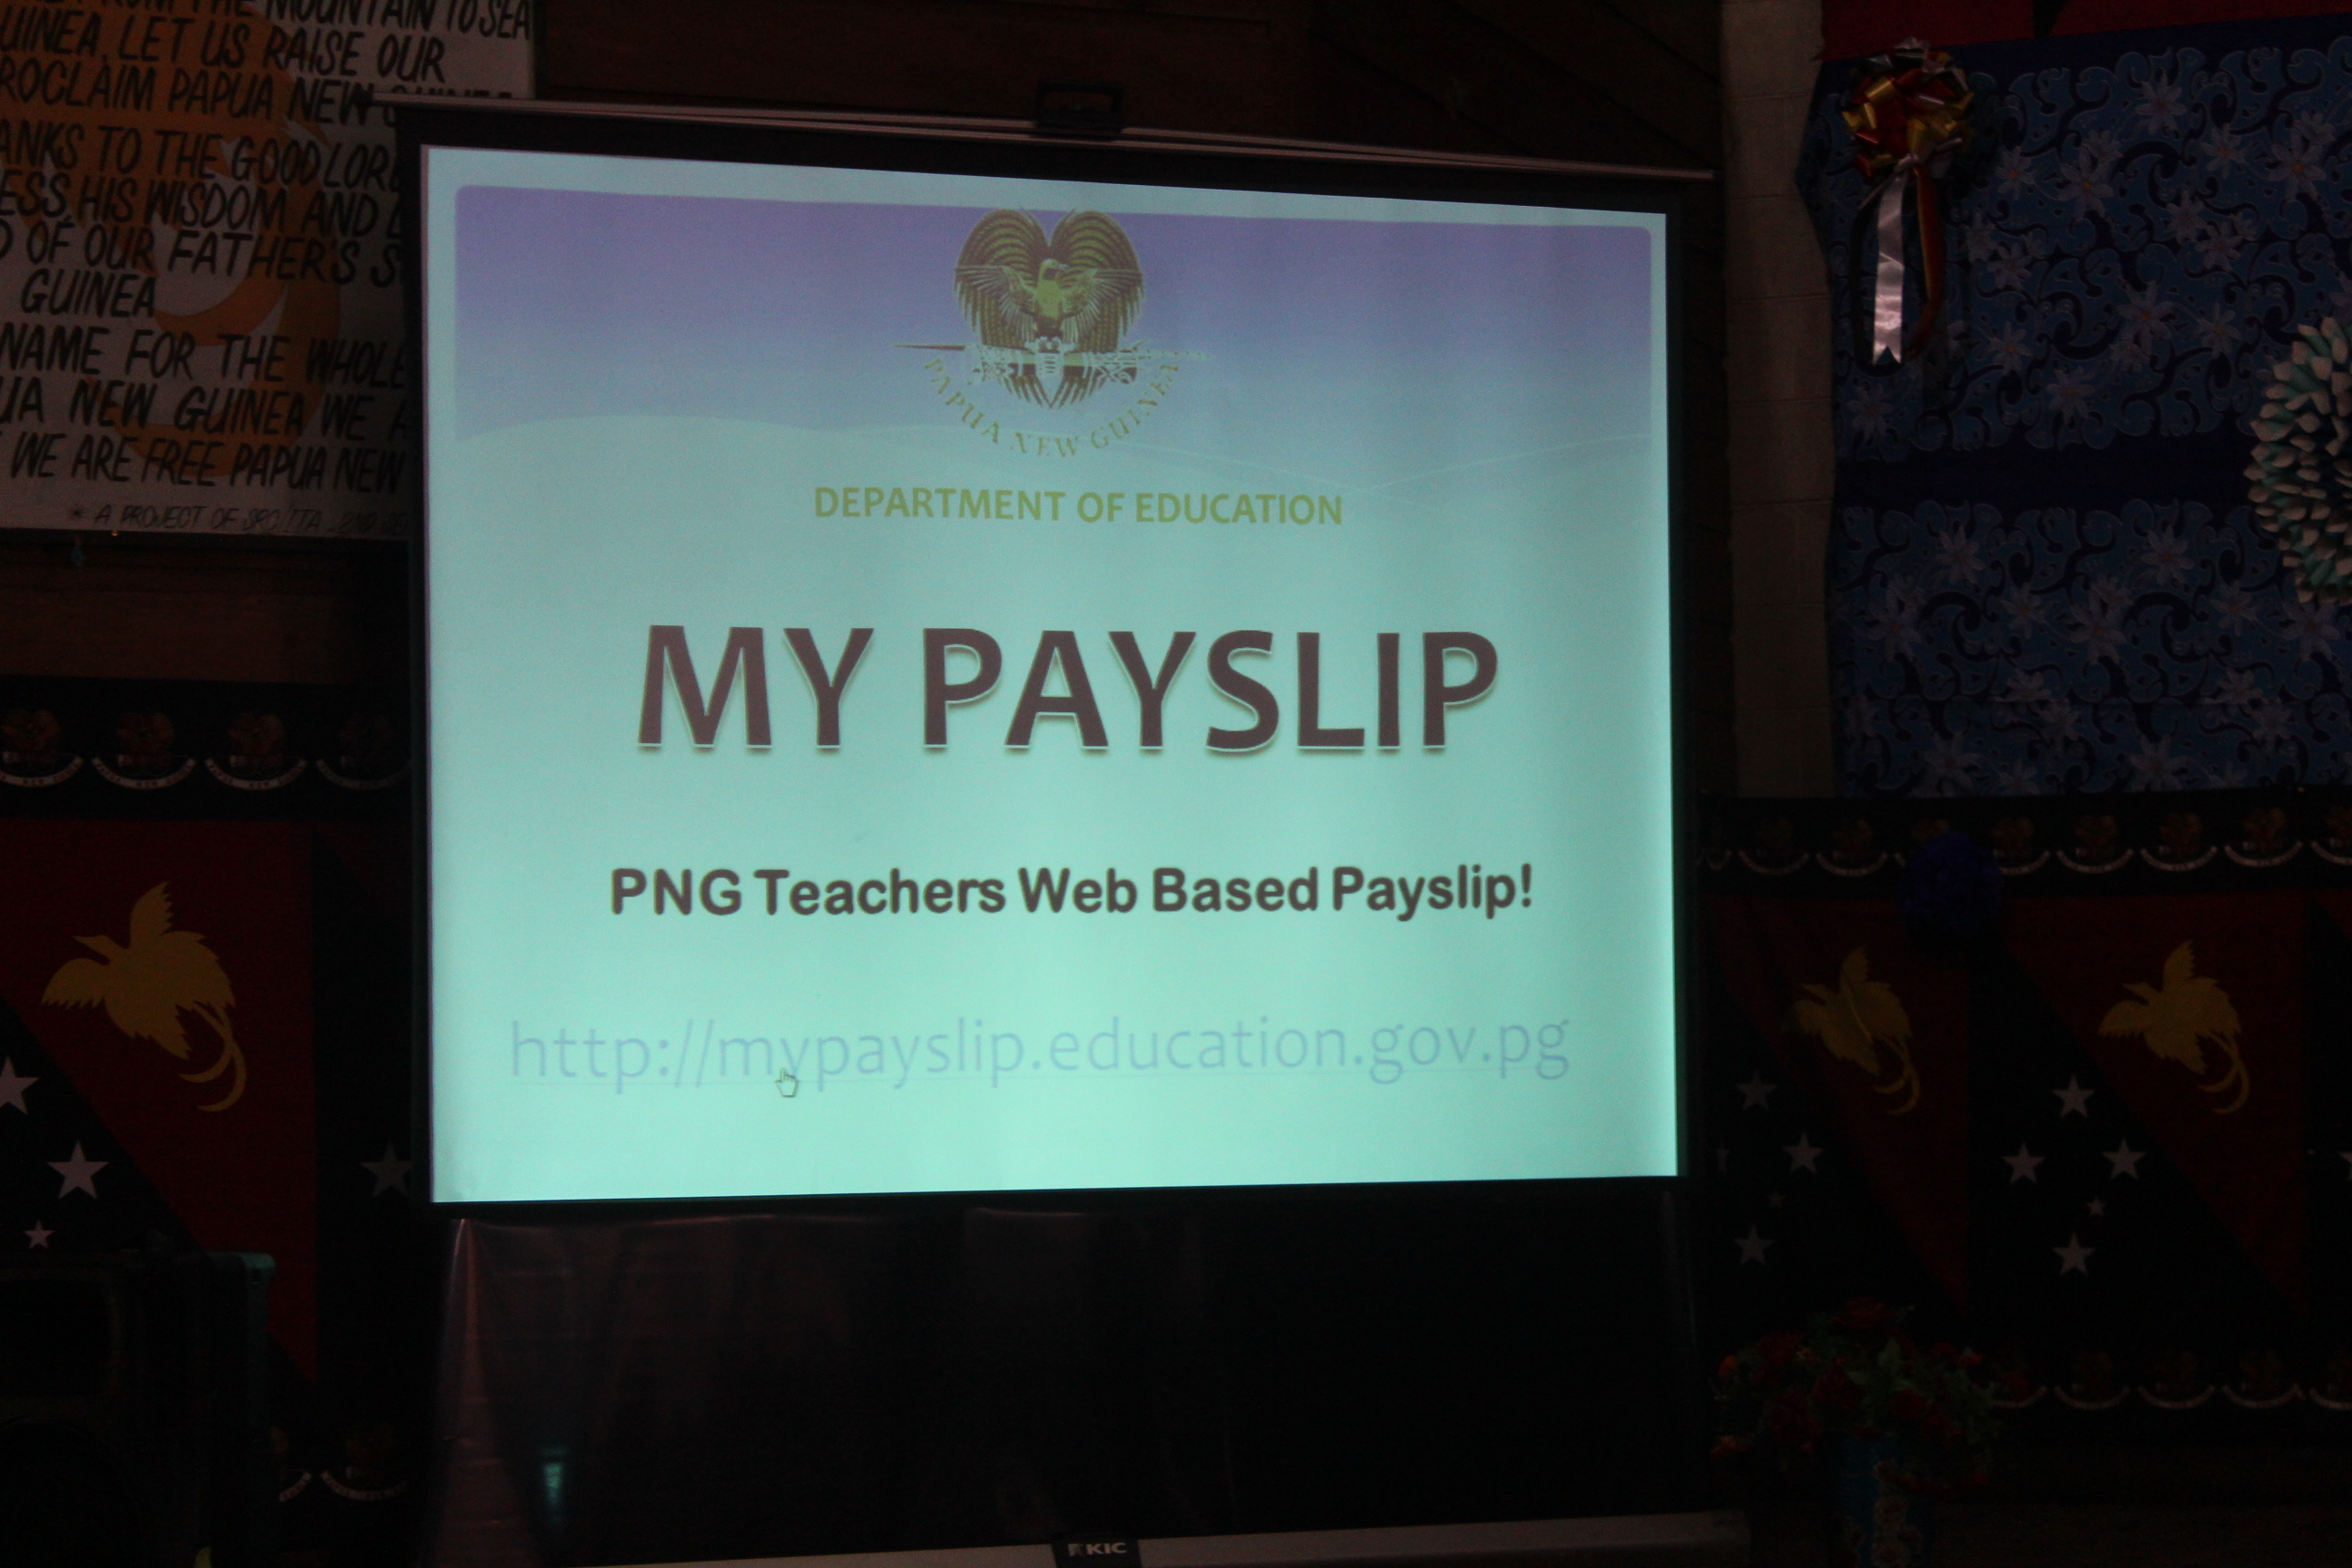 TEACHERS TO ACCESS PAYSLIPS ONLINE